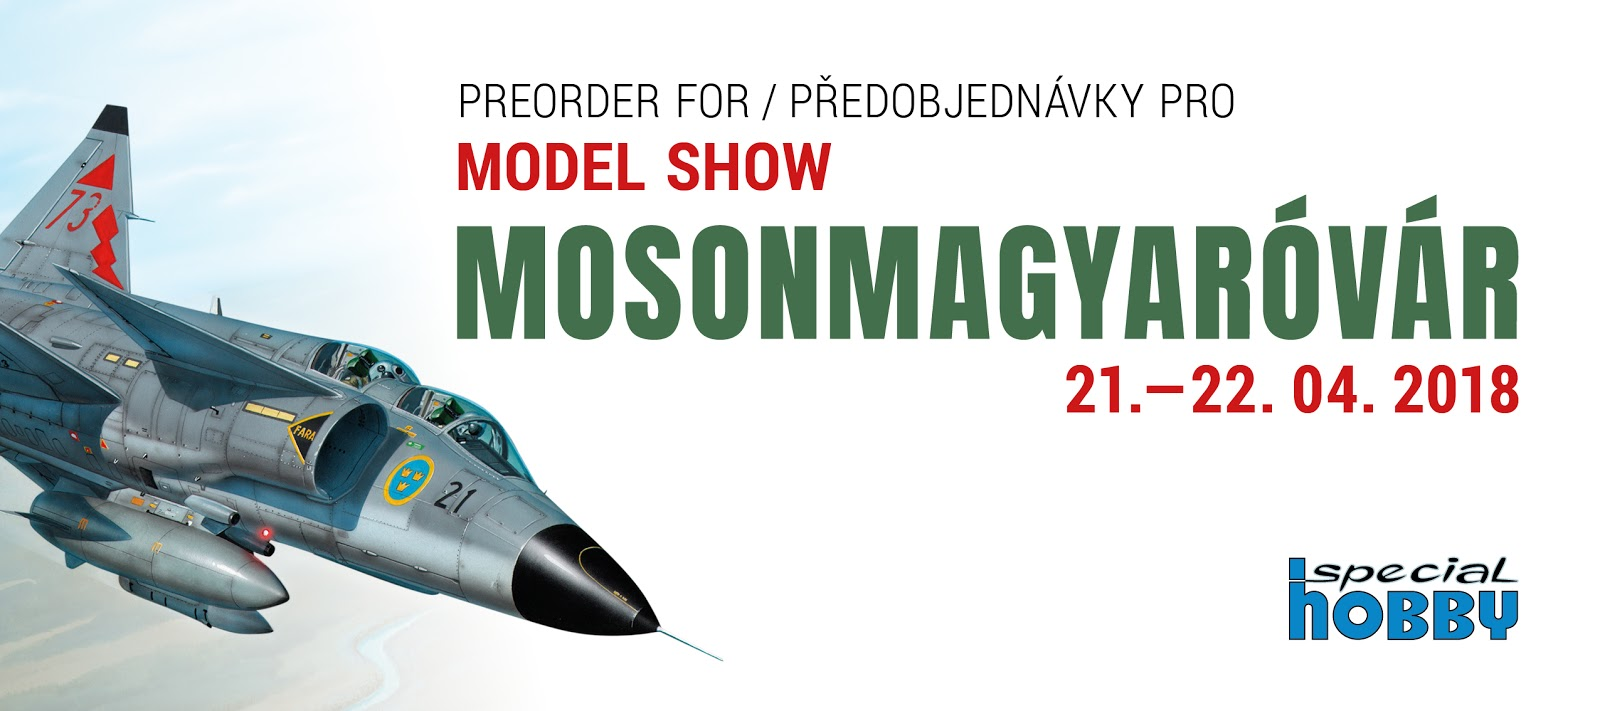 https://www.specialhobby.eu/en/preorders-mosonmagyovar-22th-international-model-show/